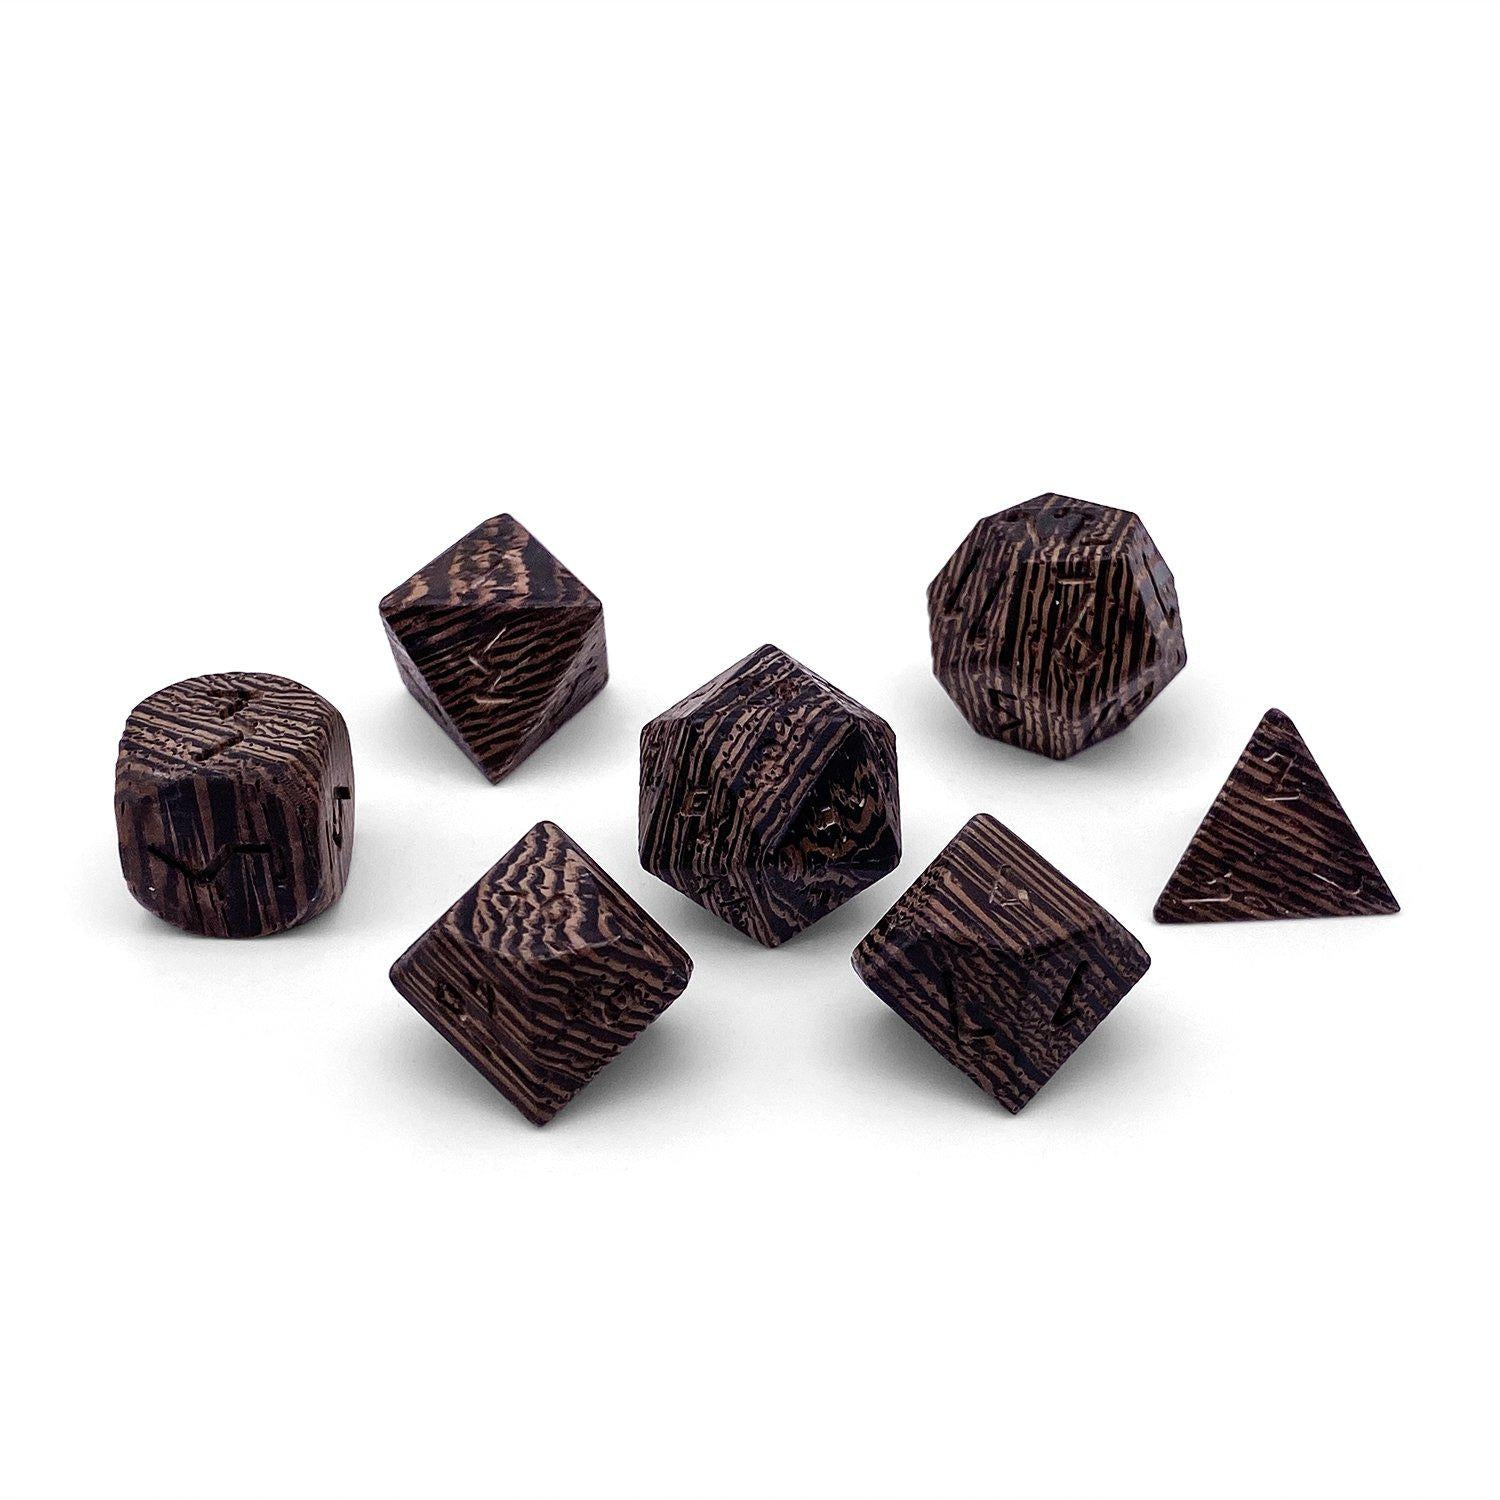 Wenge - 7 Piece RPG Wooden Dice Set